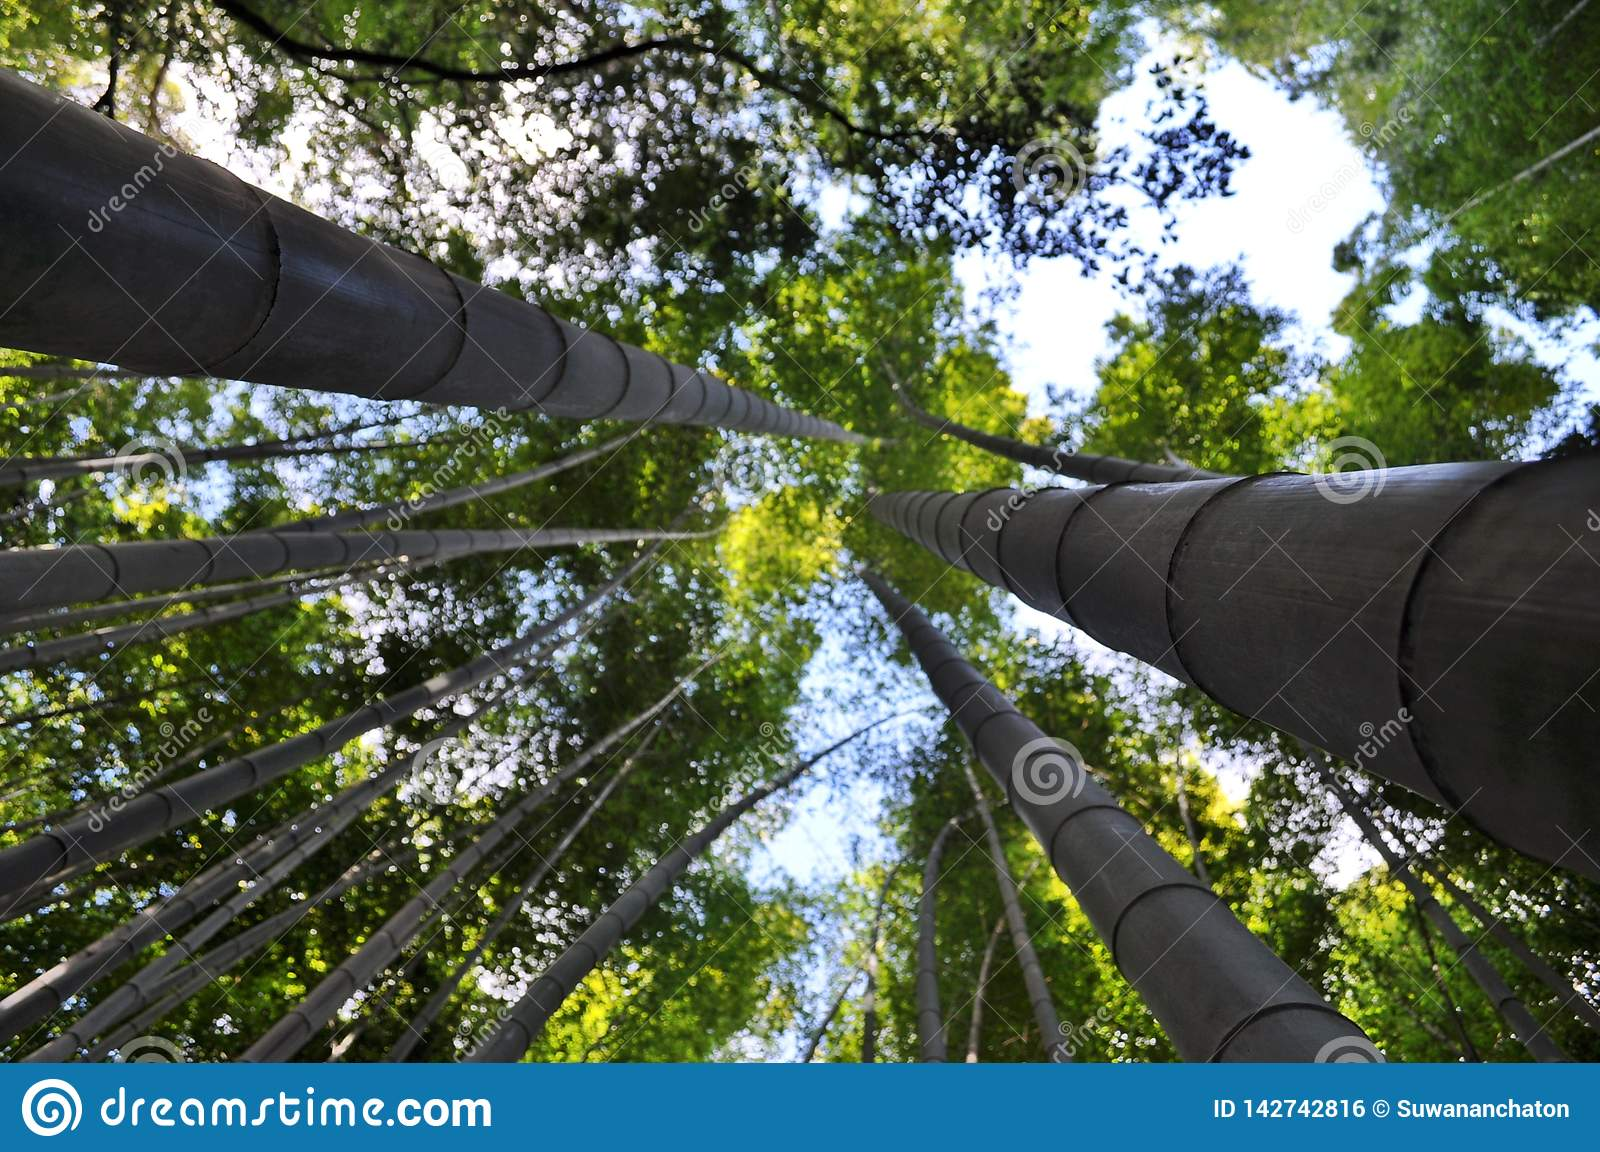 Bamboo trees in Kyoto, Japan